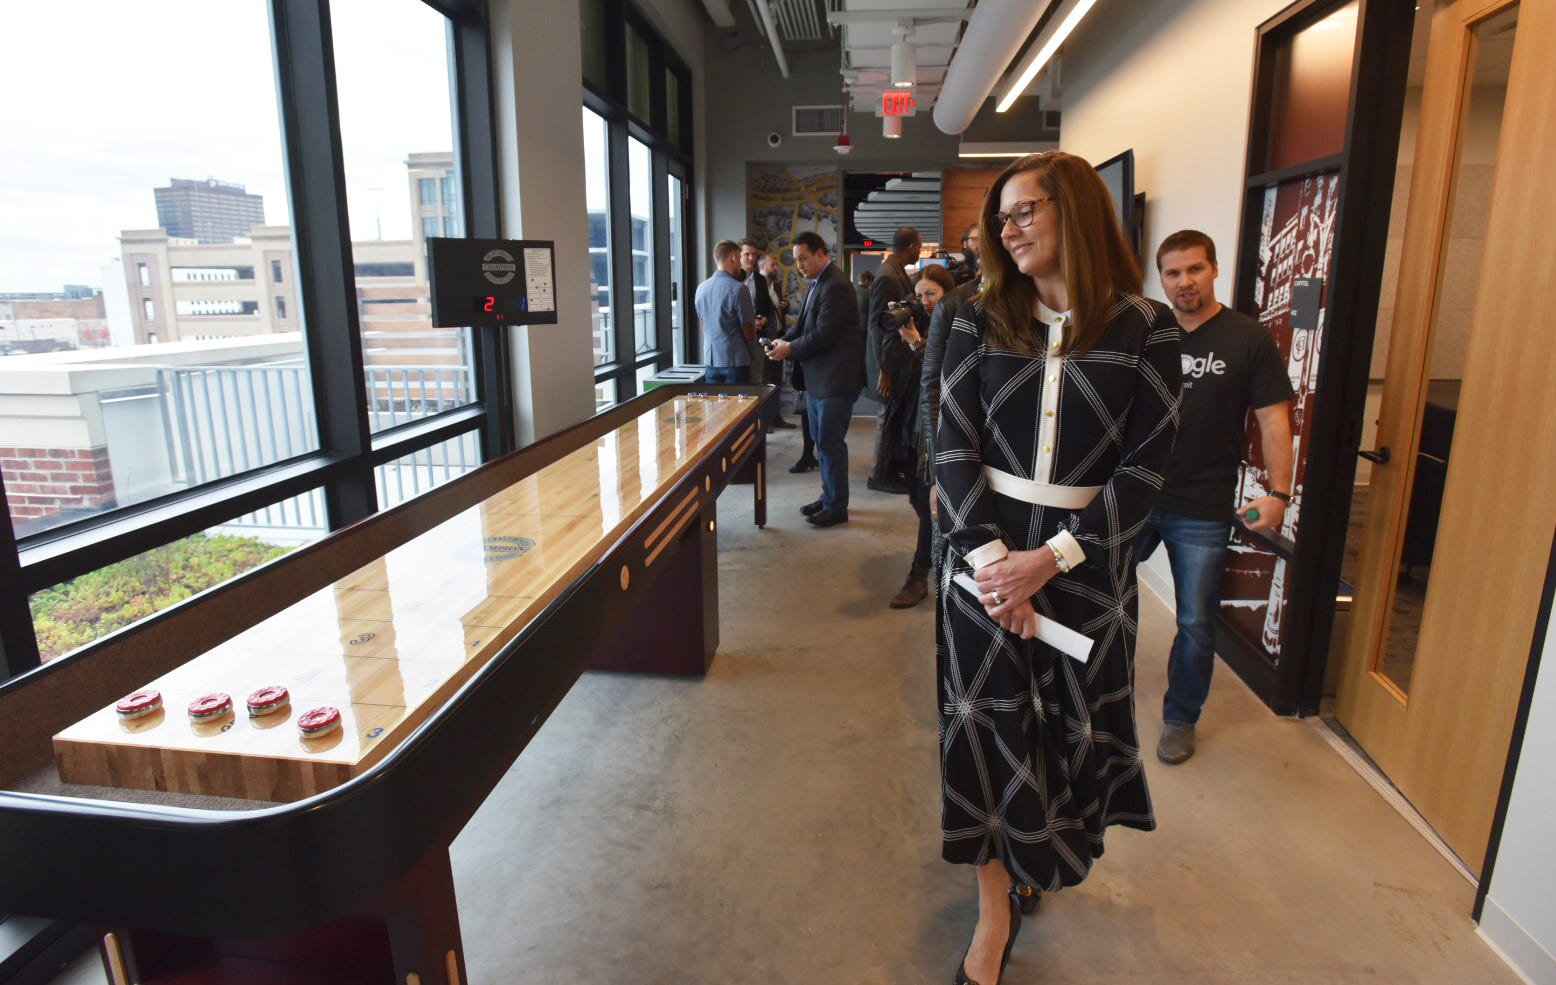 Google Detroit Site Lead Danielle Russell walks past a shuffle board table during a media tour of the facility in Little Caesars Arena.